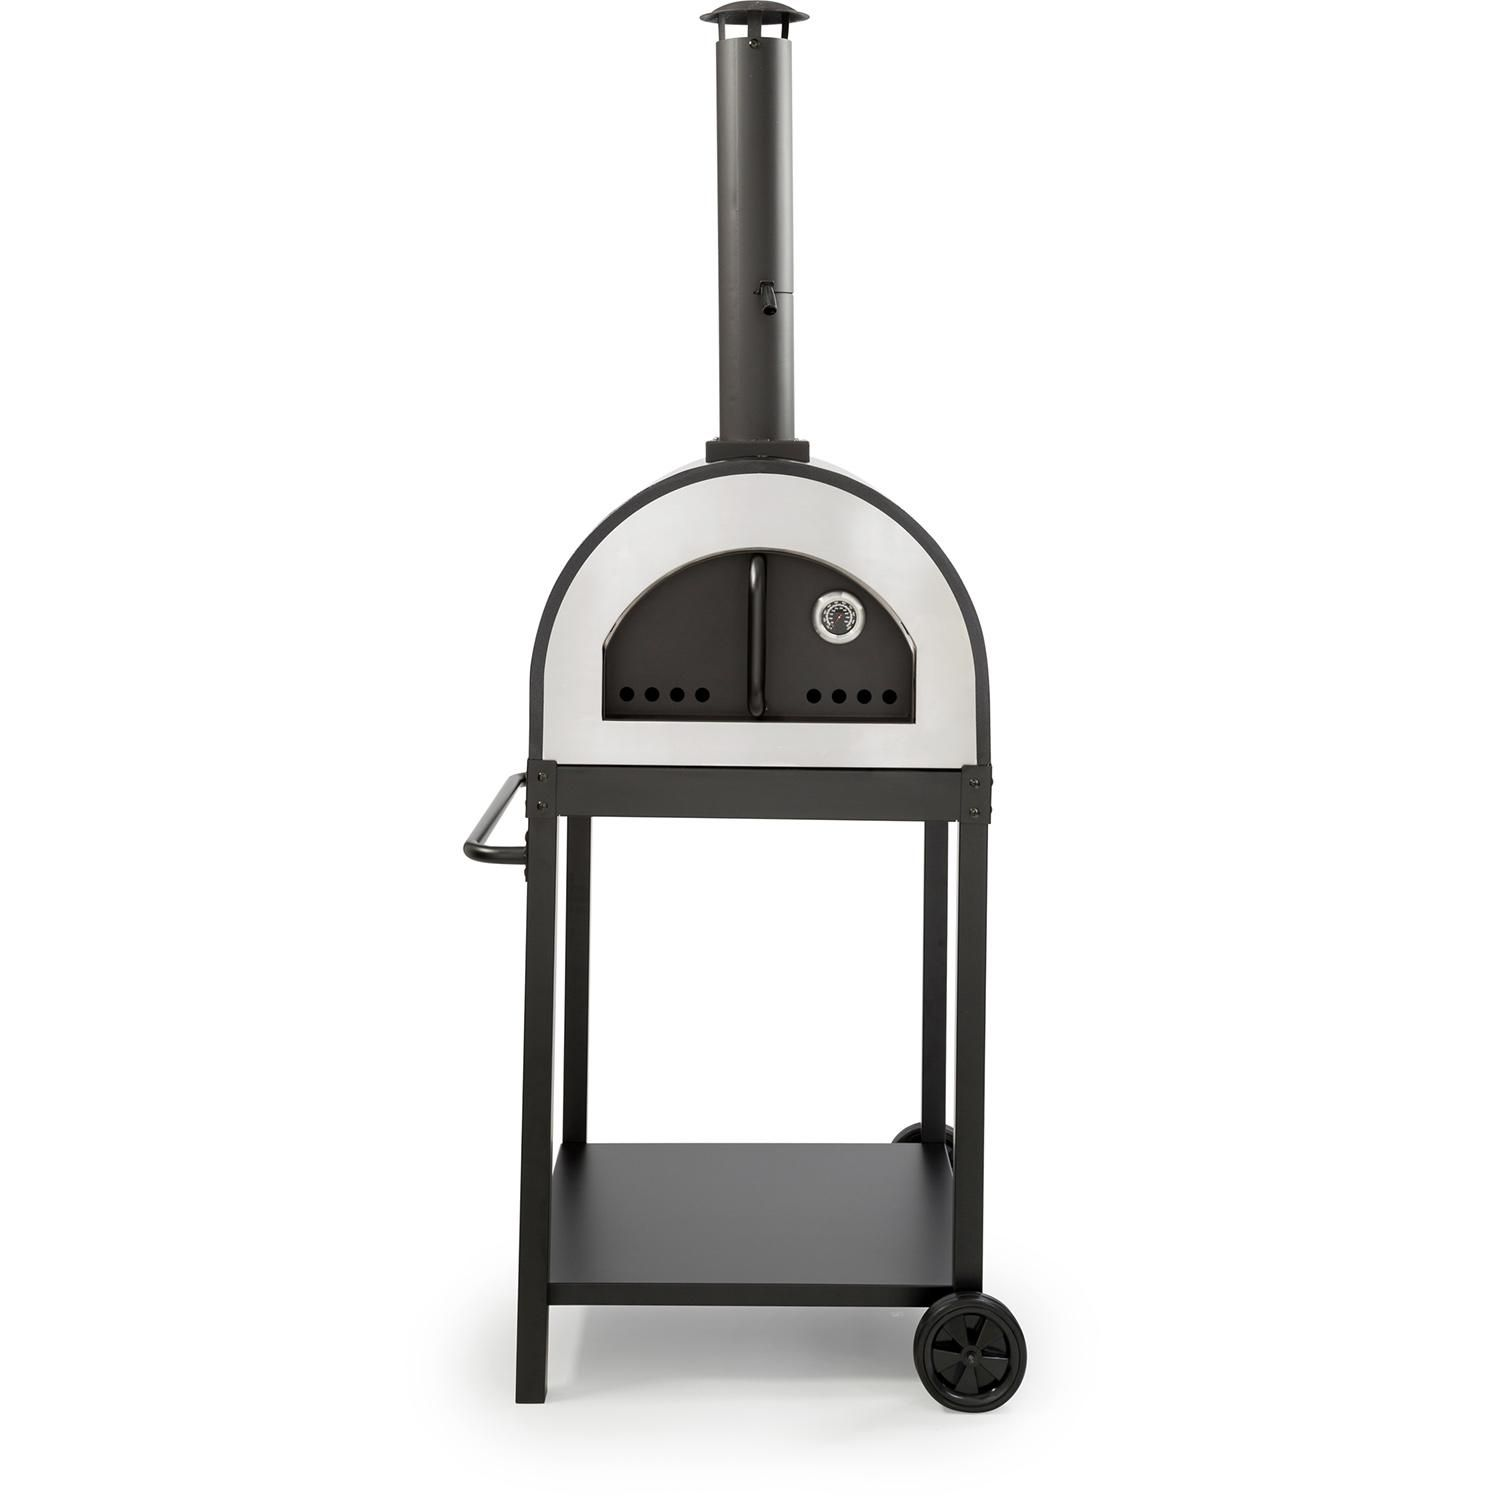 Wppo Deluxe 24 Inch Outdoor Wood Fired Pizza Oven Black Ku17blk Bbqguys In 2020 Blanket Insulation Wood Fired Pizza Outdoor Wood